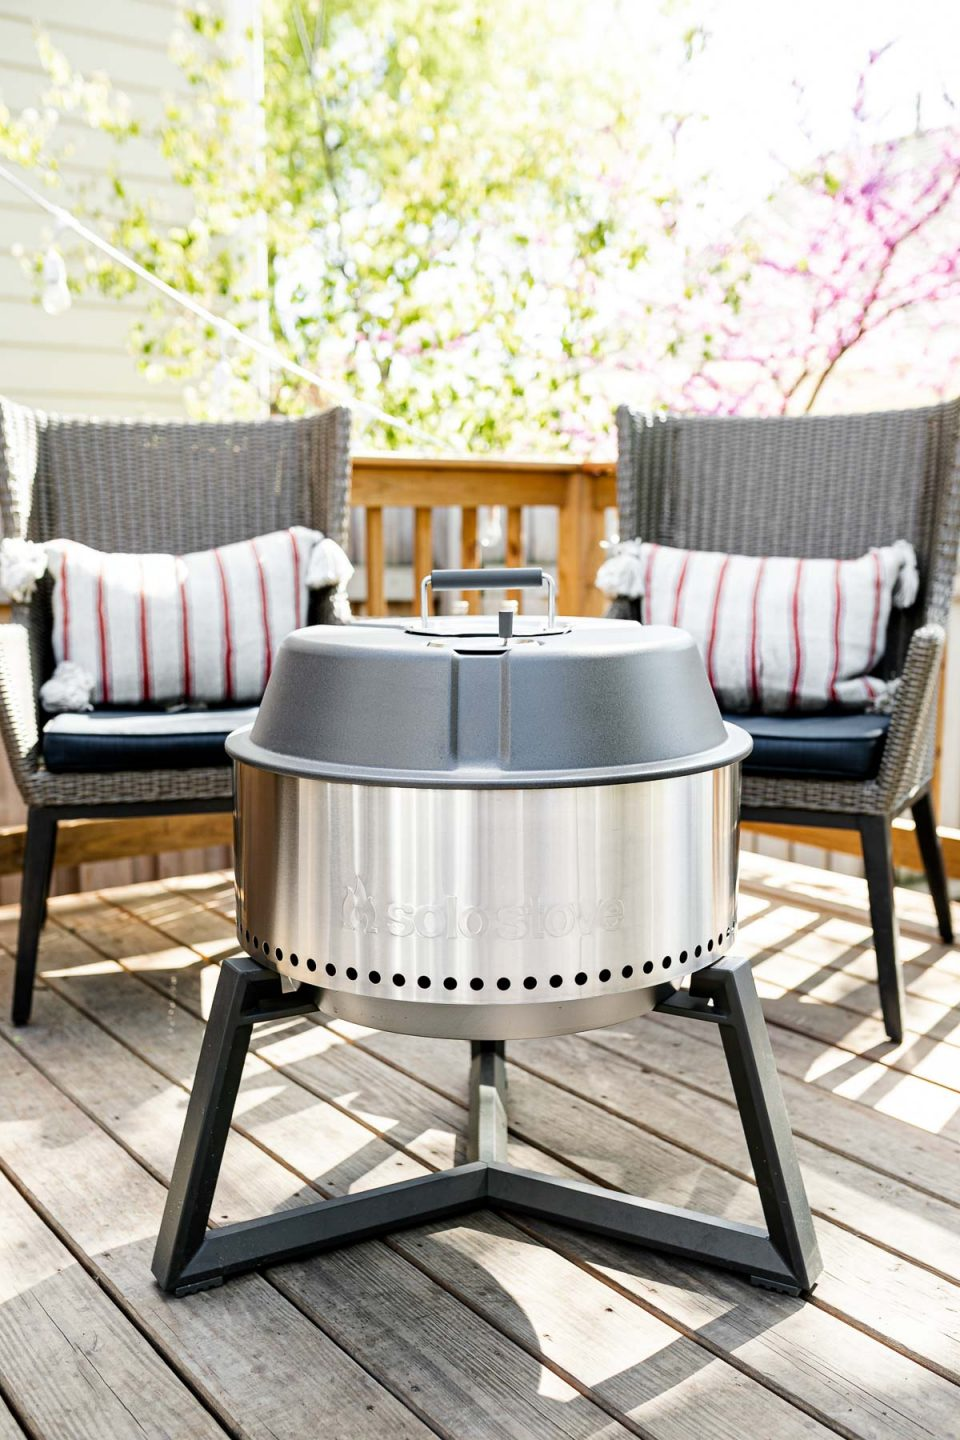 A Solo Stove Grill sits on top of a wooden deck with the lid close. Two gray patio chairs are set up behind the grill in the background, each with a red & white striped lumbar pillow on top of them.